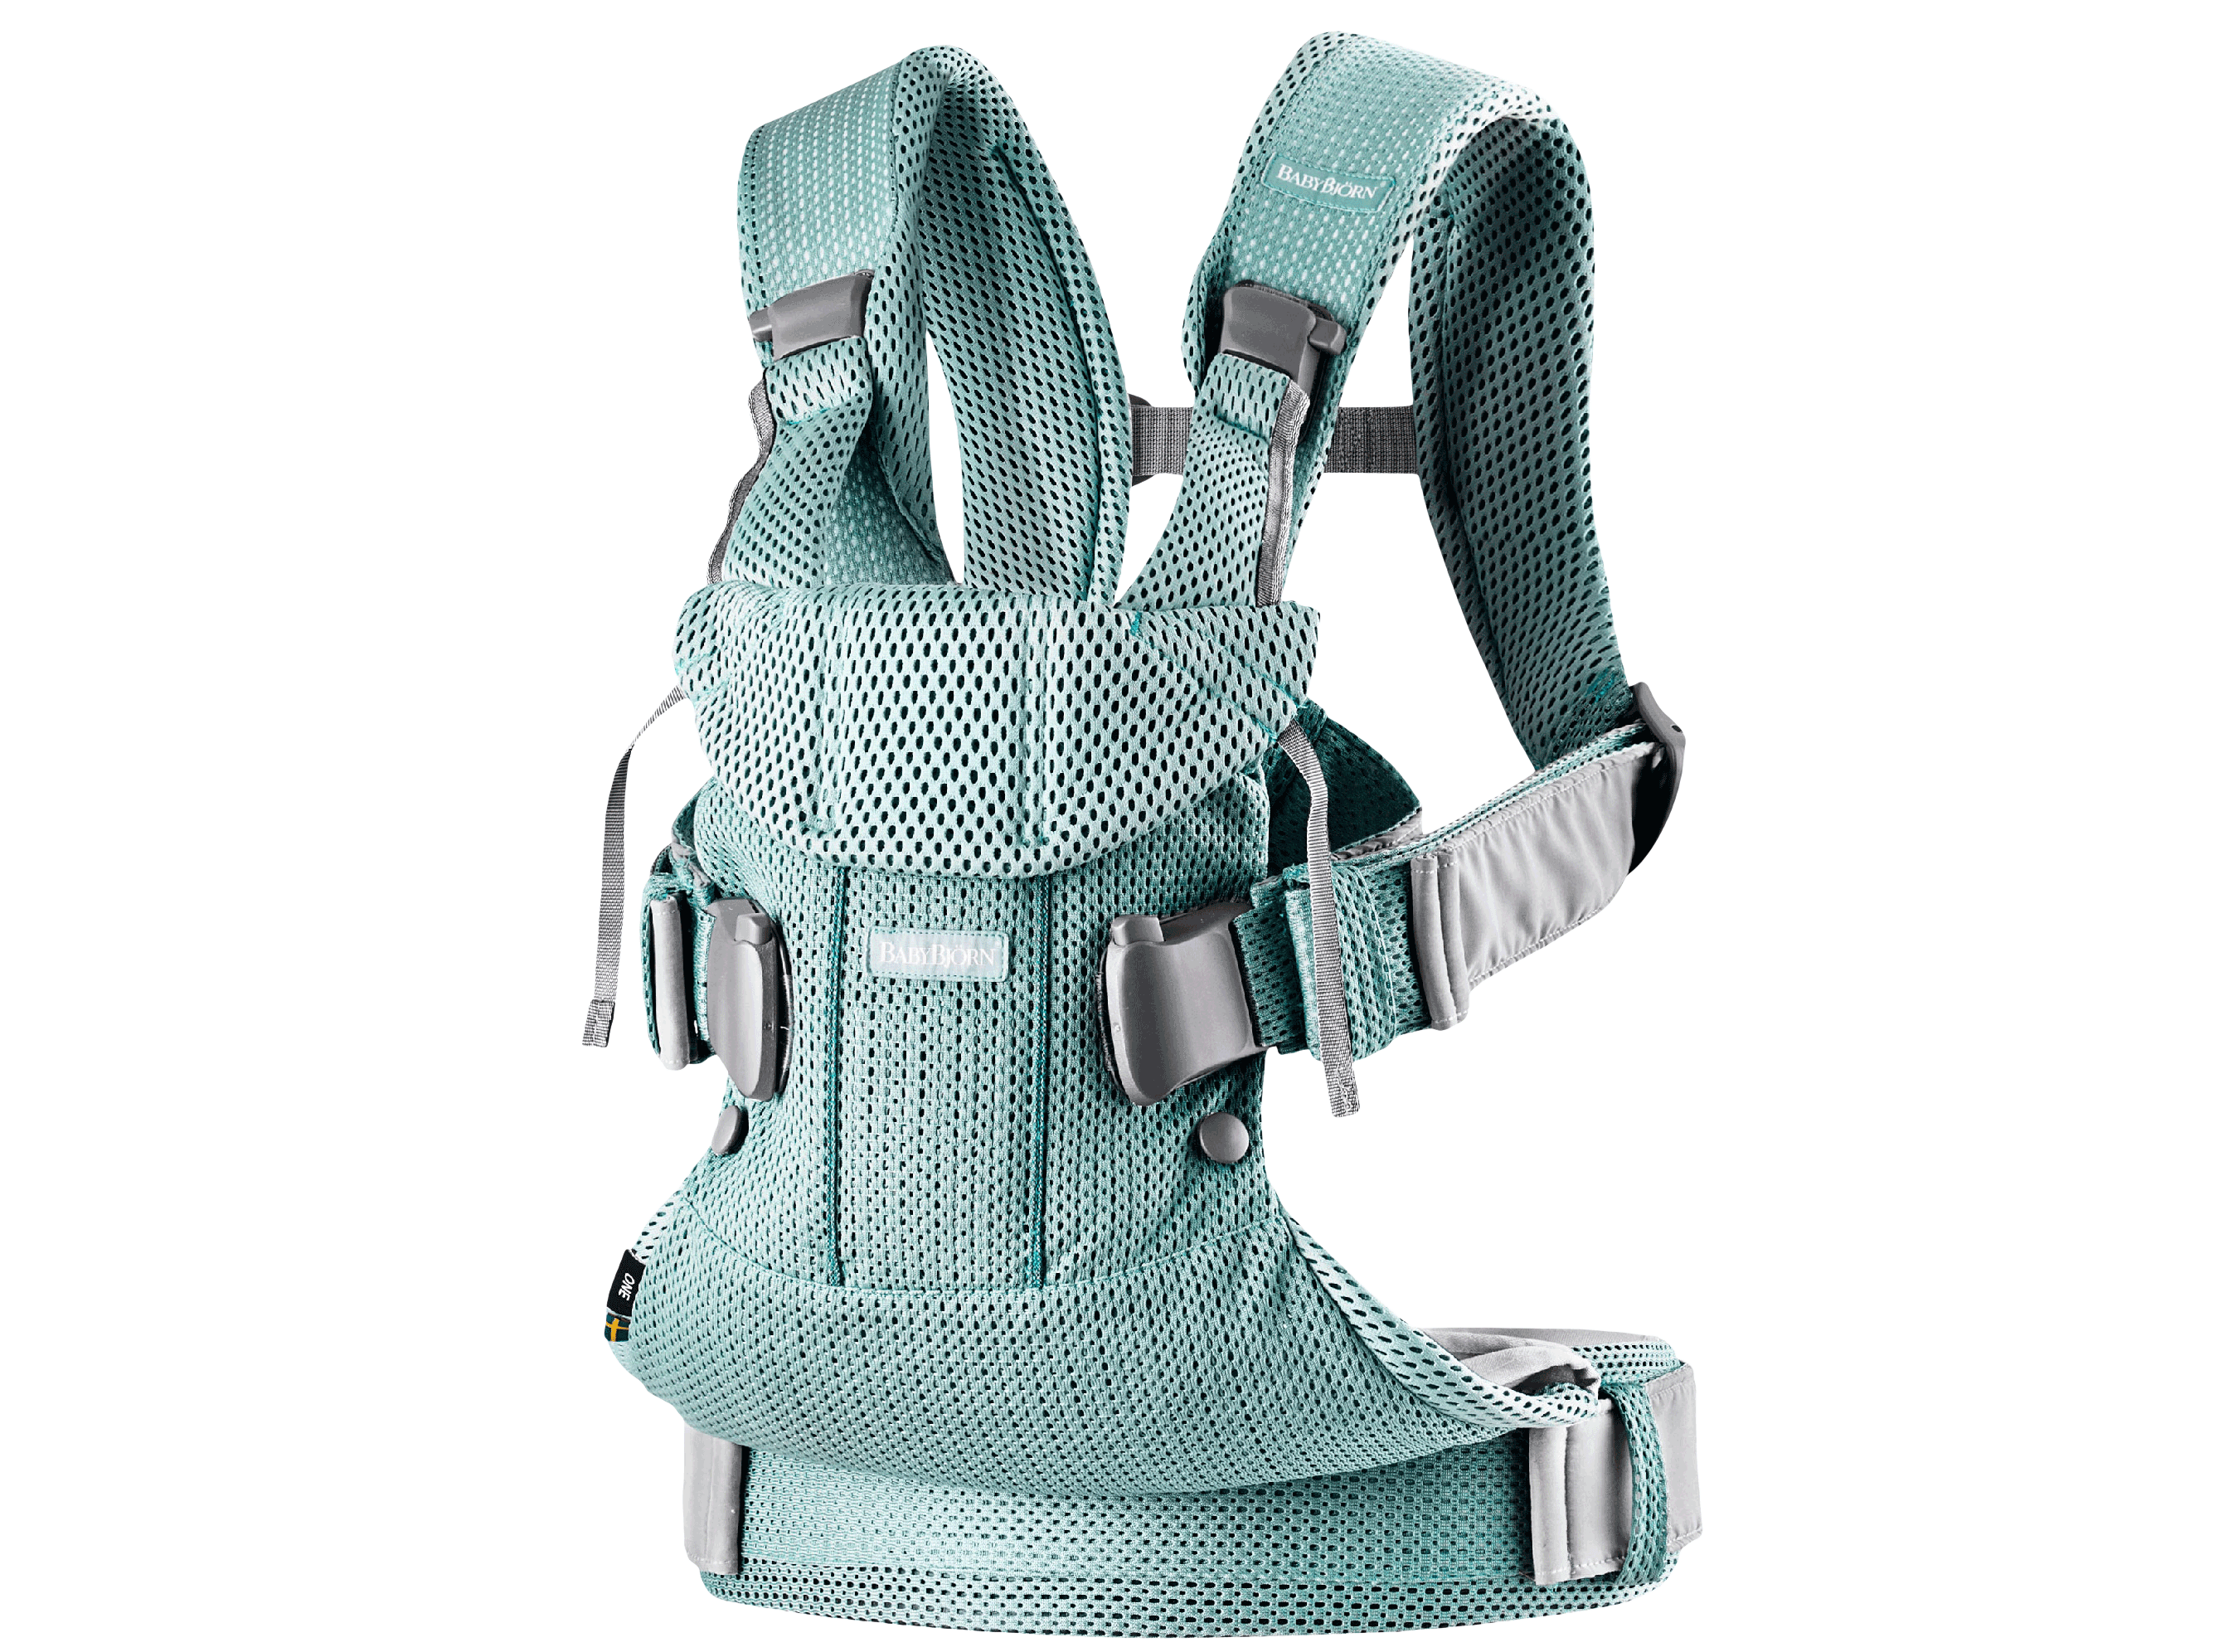 Baby Carrier One Air in frost green mesh, an ergonomic, soft and flexible baby carrier that can be used from new born to 3 years old, including front facing and back carrying.